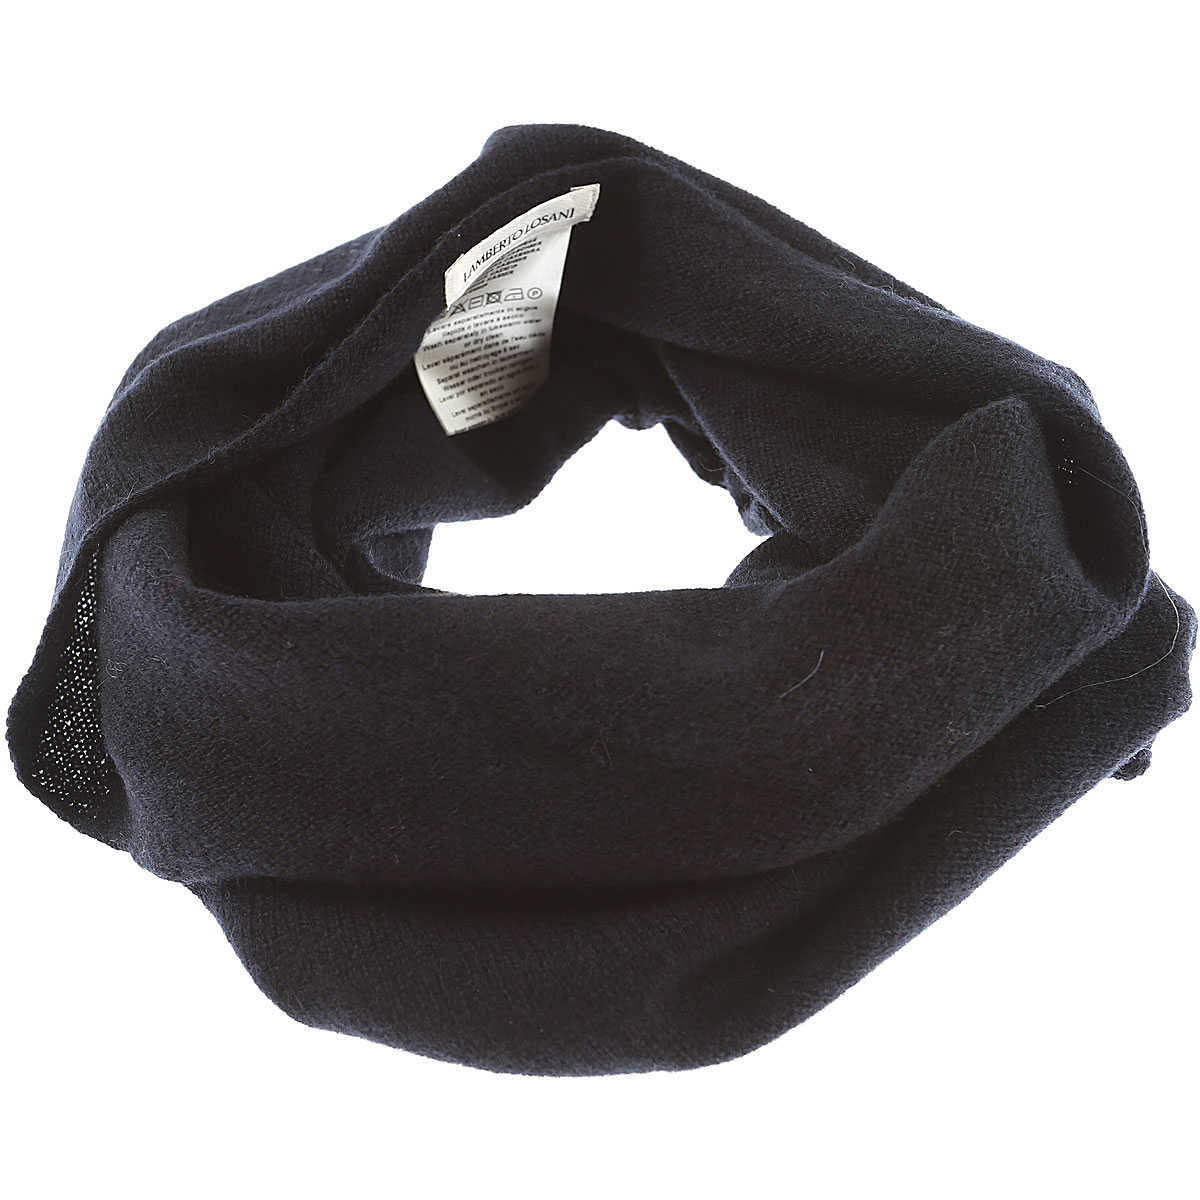 Lamberto Losani Scarf for Women On Sale Dark Midnight Blue DK - GOOFASH - Womens SCARFS